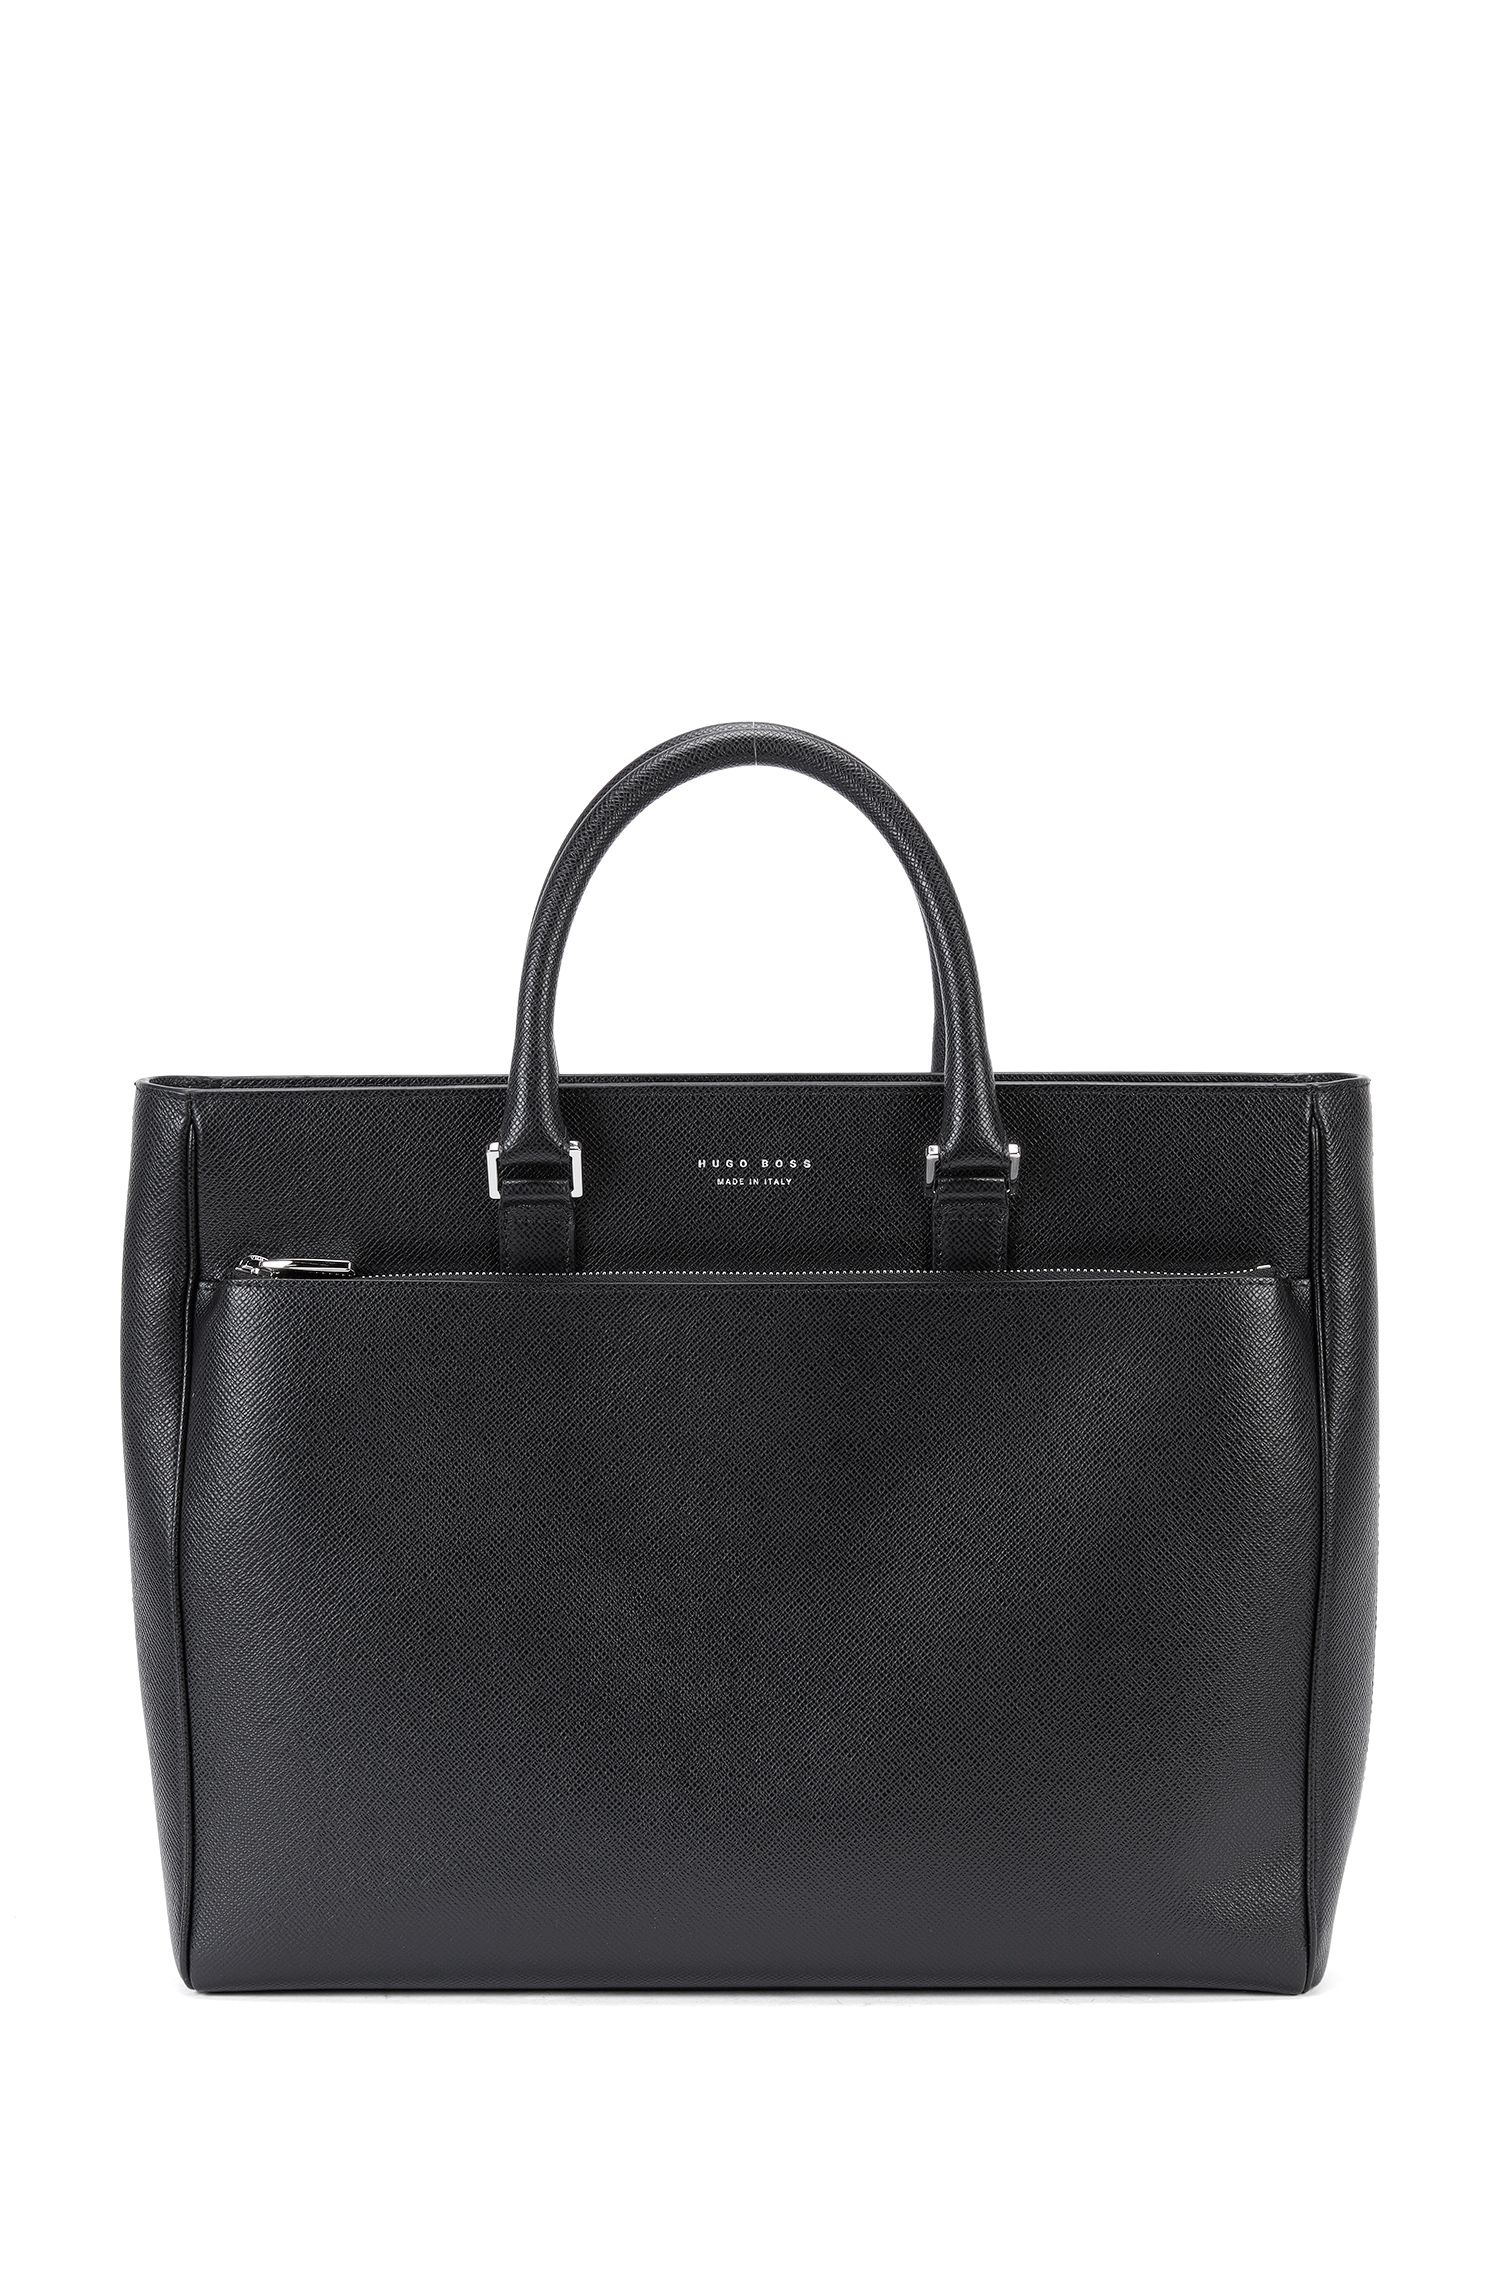 Italian Palmellato Leather Tote | Signature Tote, Black